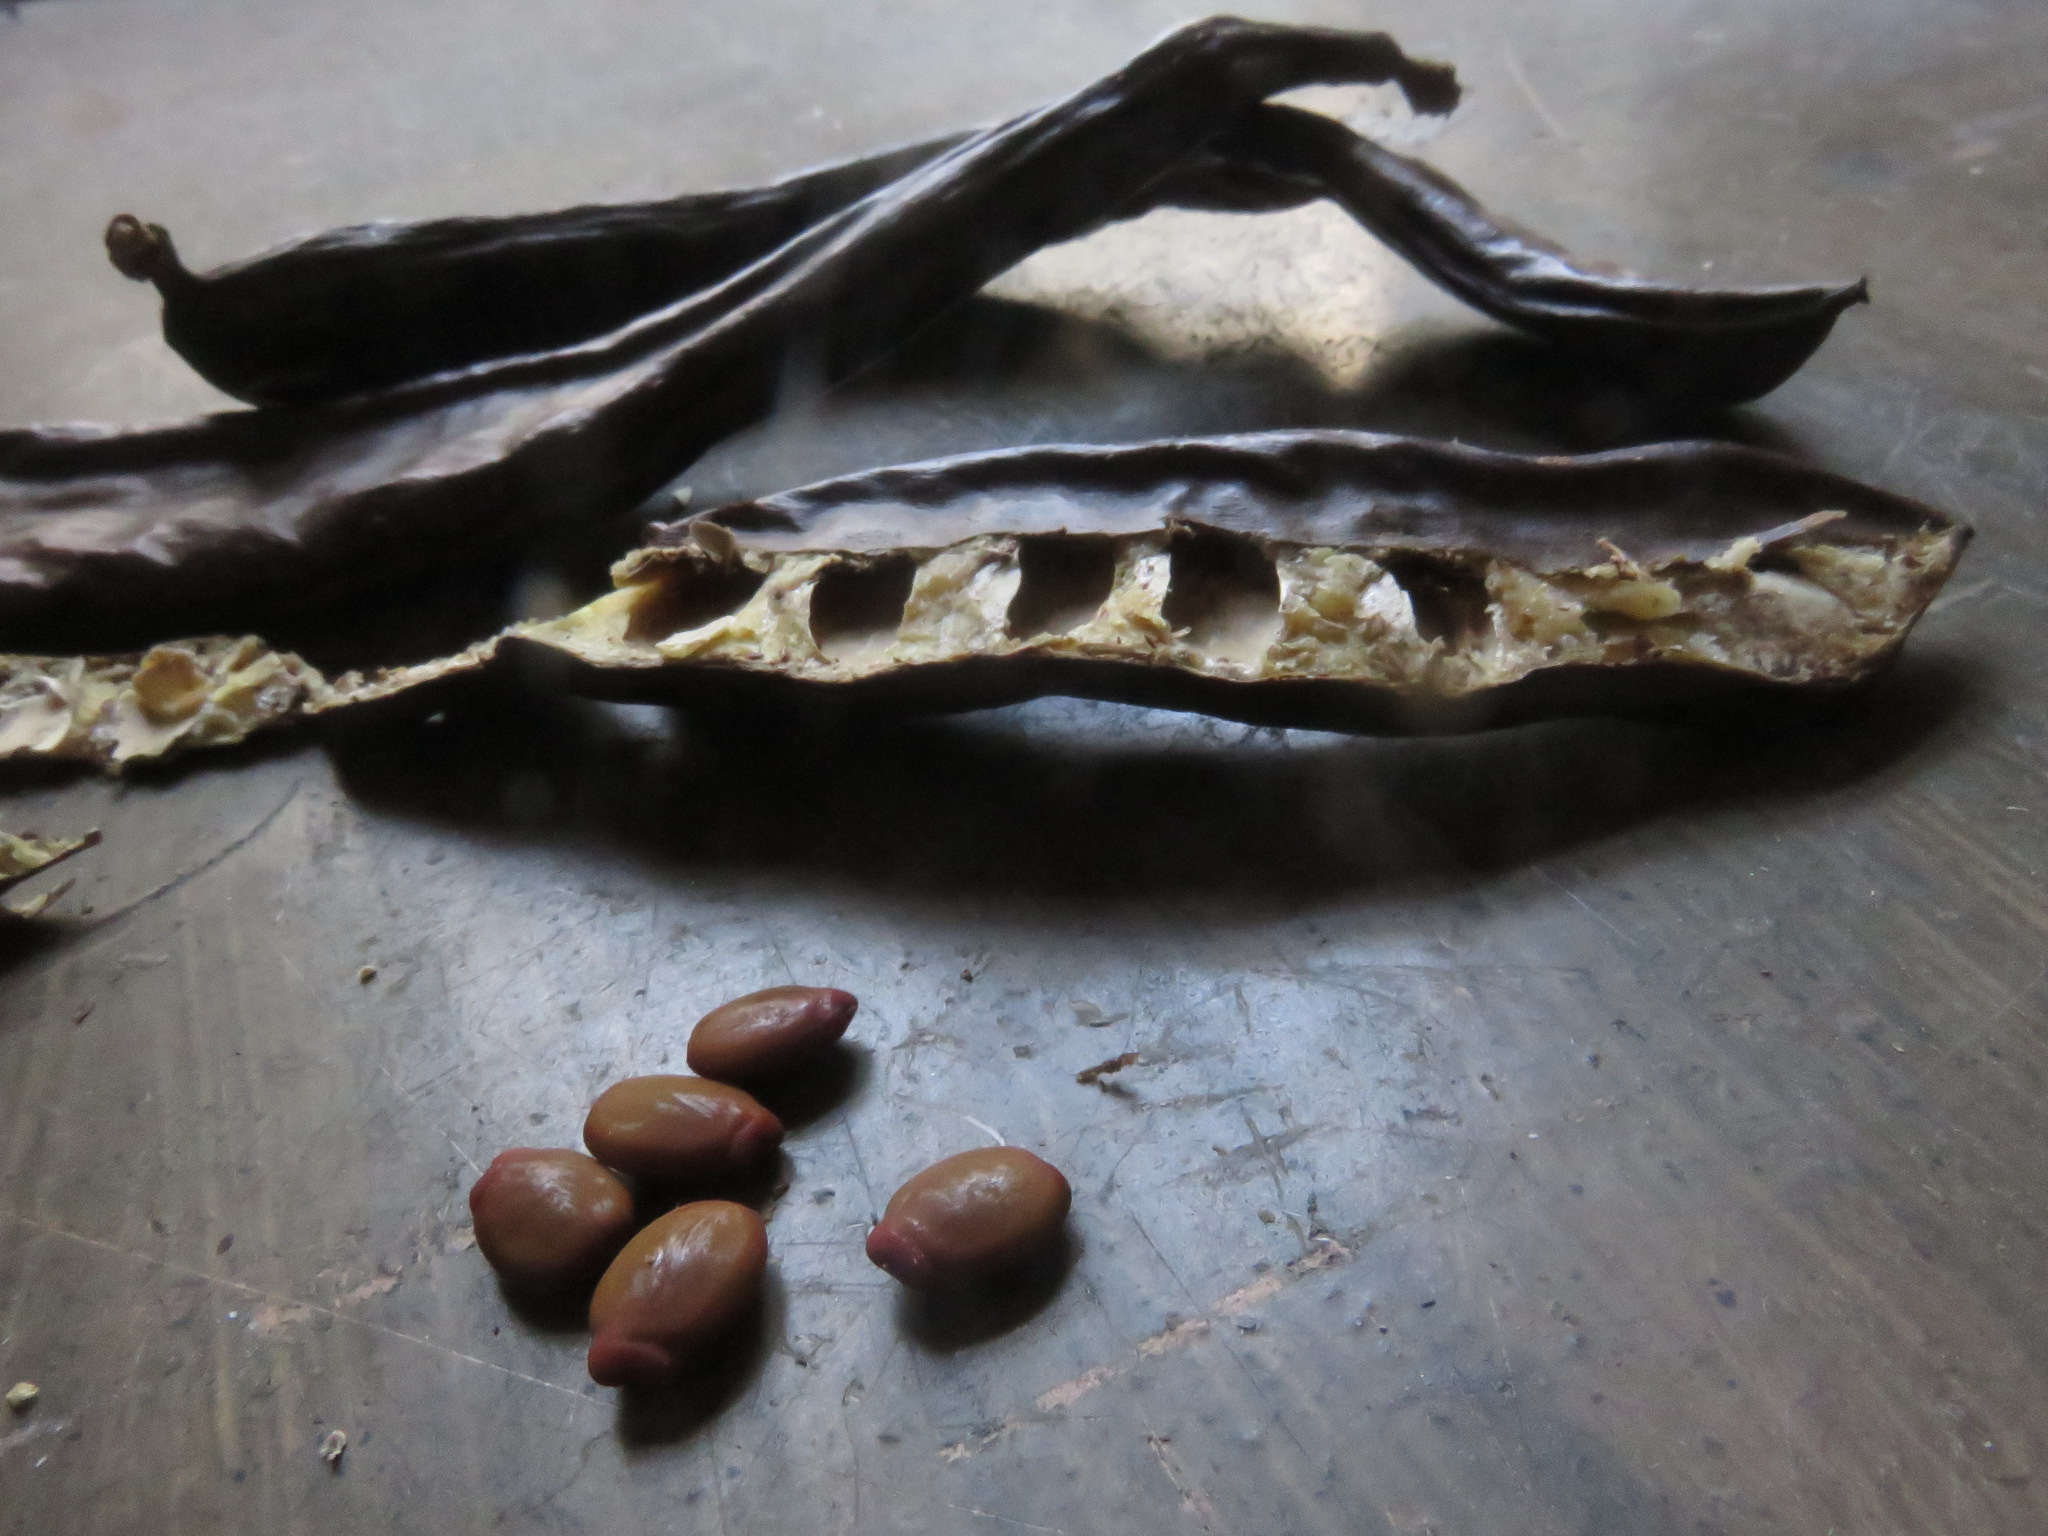 Carob seeds are delicious and the plants trees are really easy to grow in our climate.